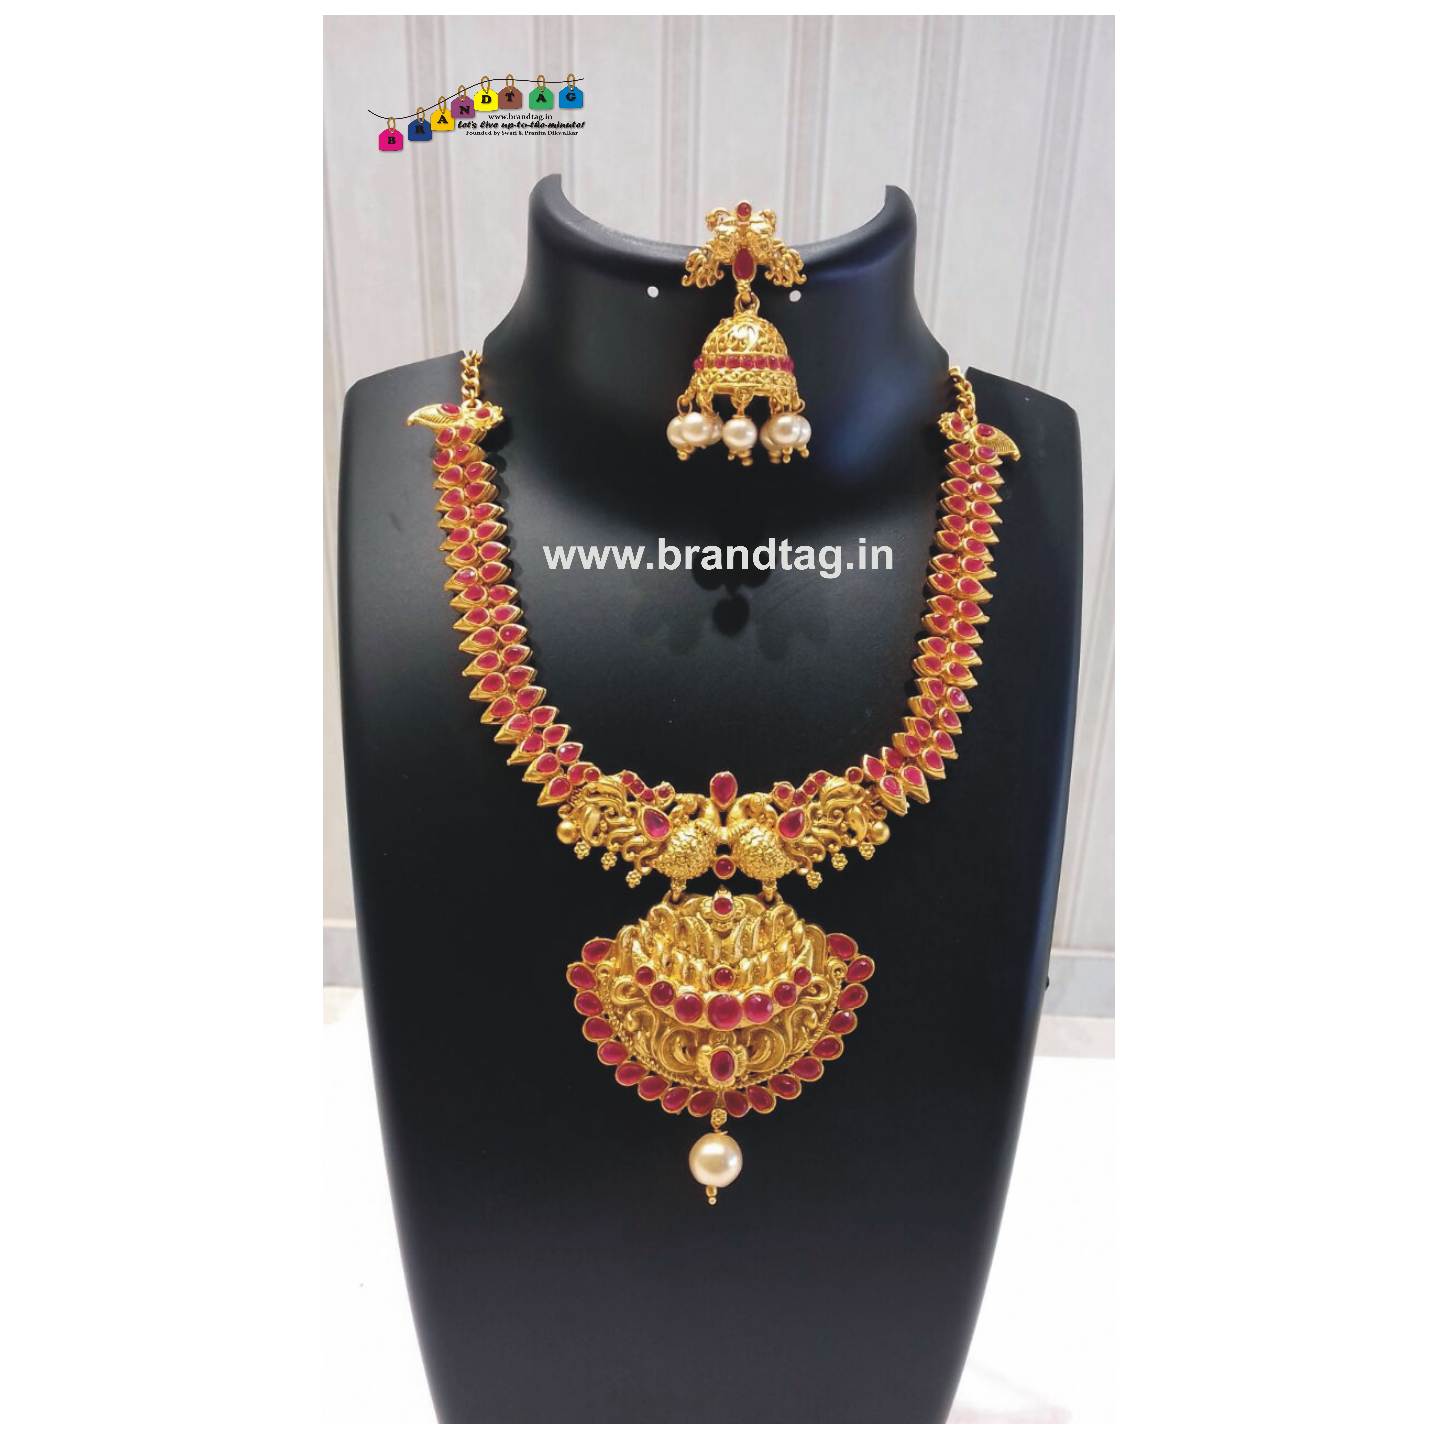 Diwali Collection - Pink Stones studded Golden Necklace Set!